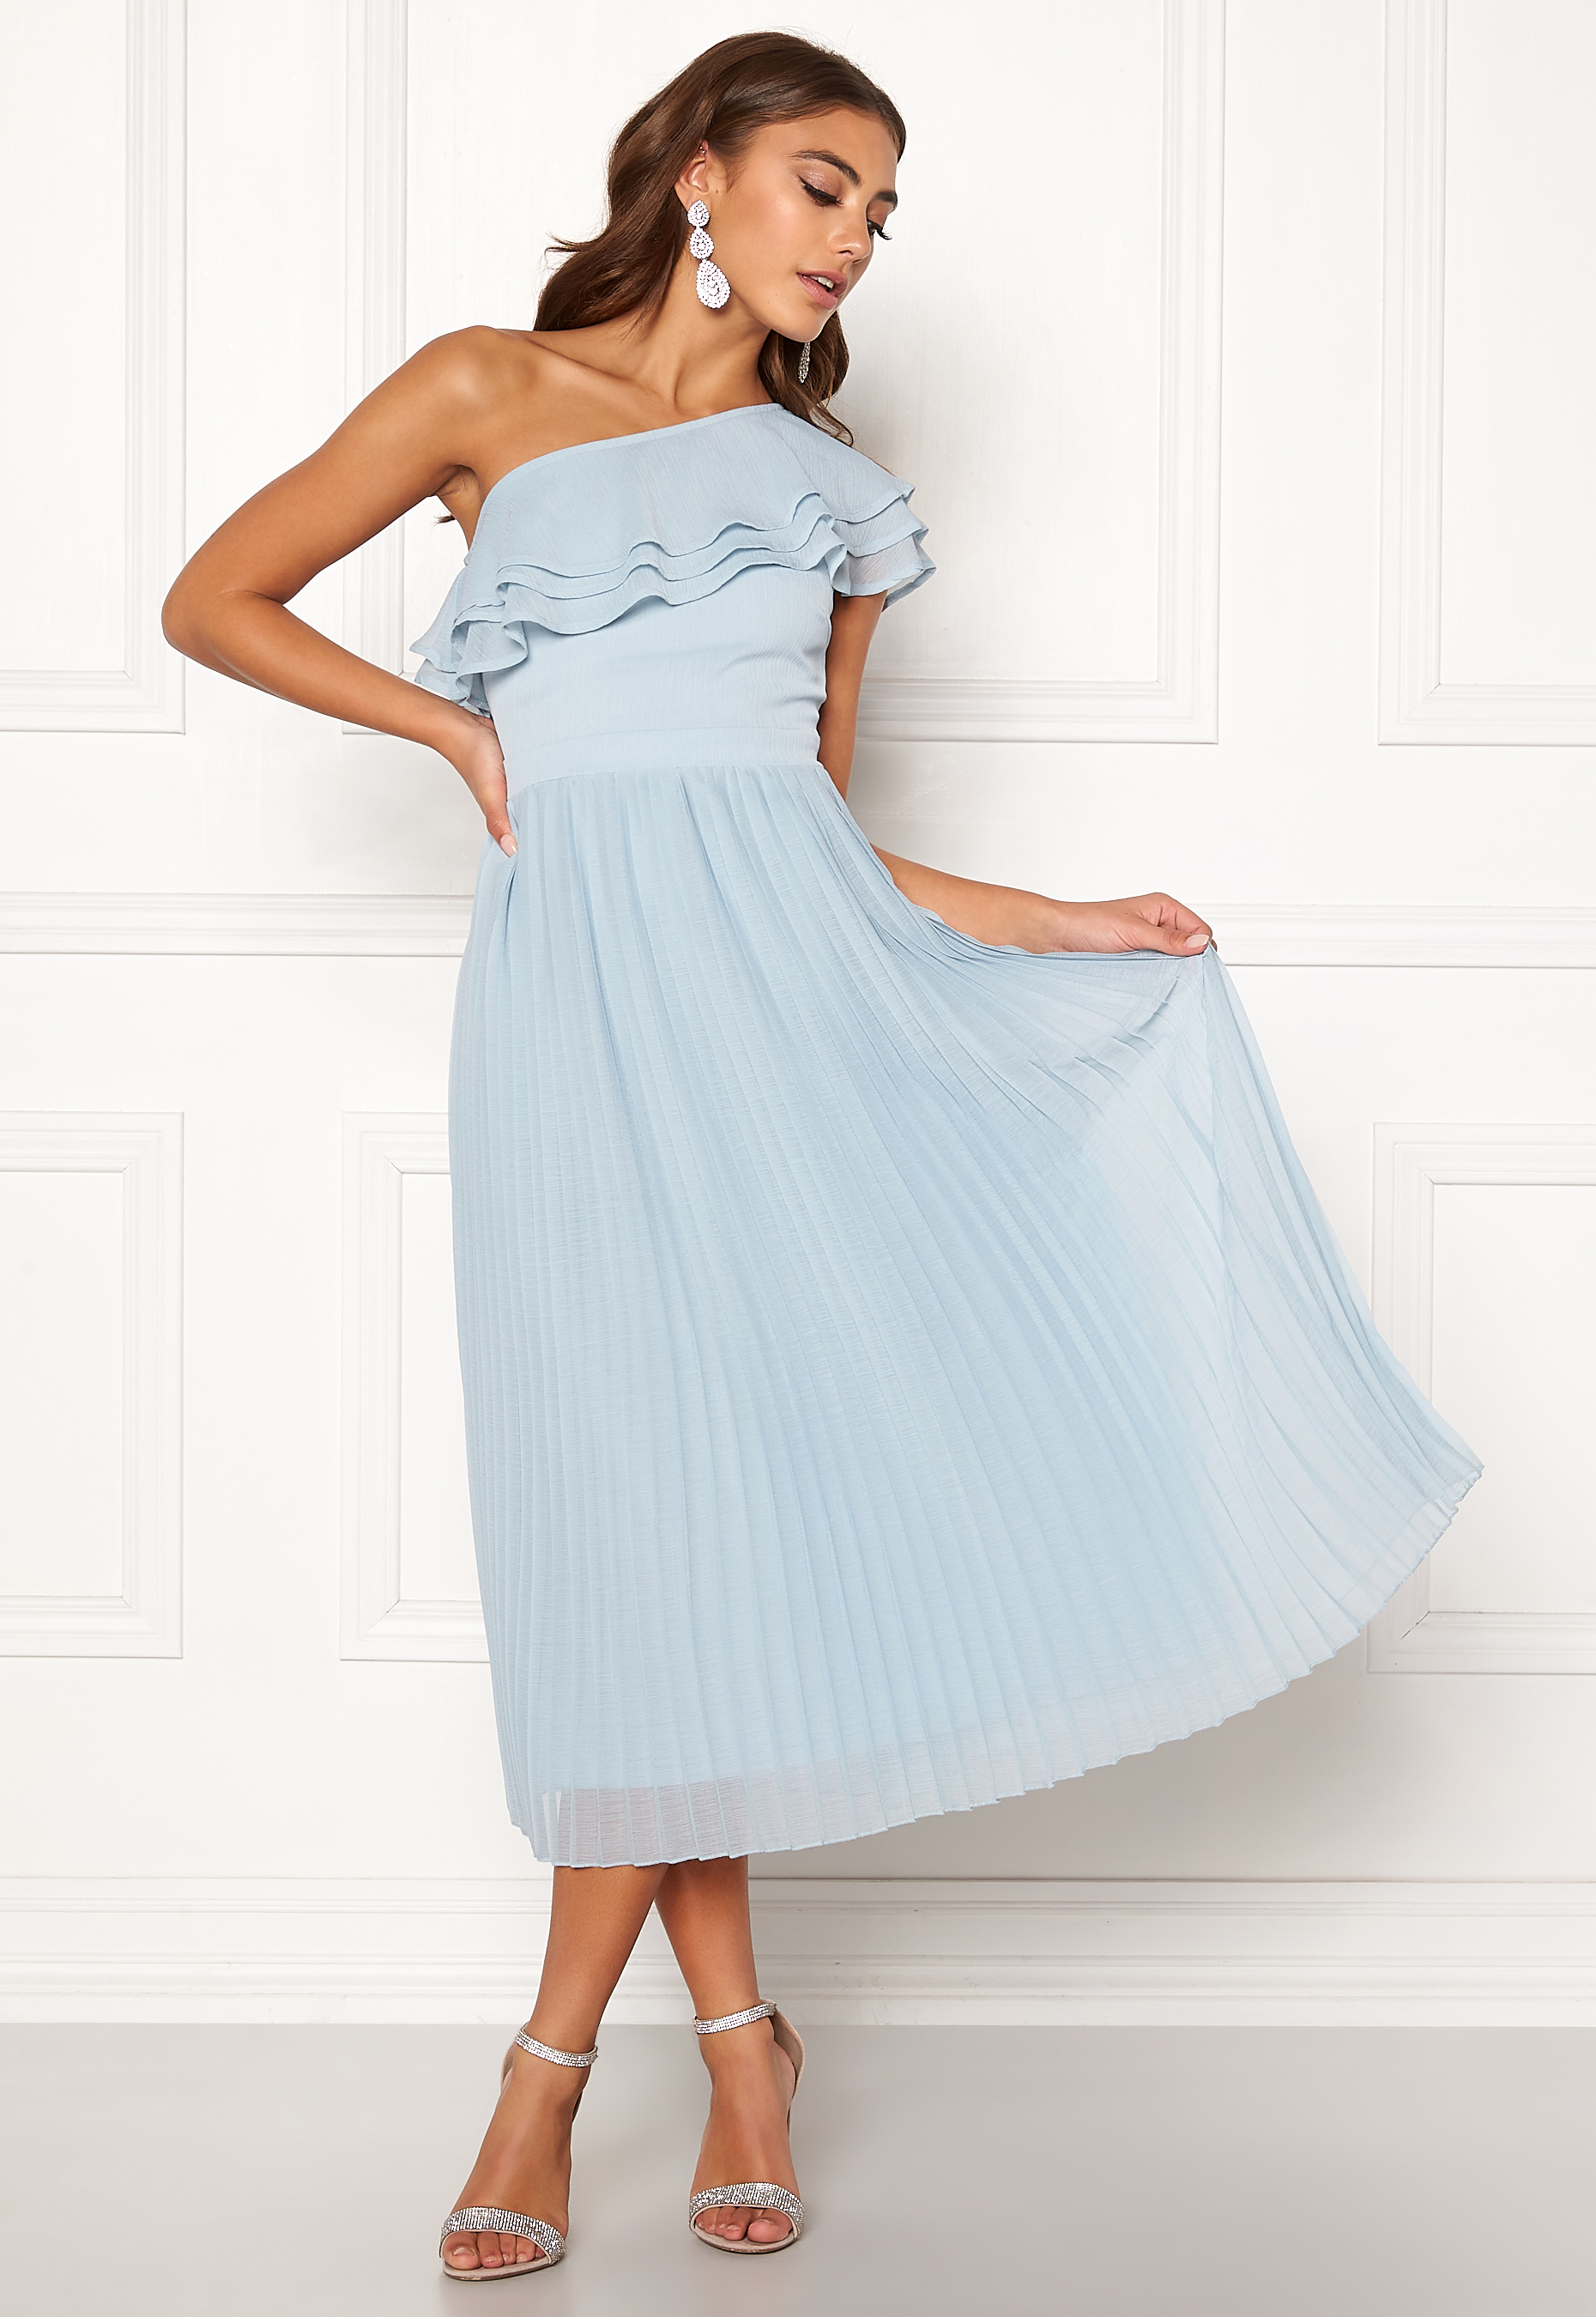 520202eac893 BUBBLEROOM Carolina Gynning Frill one shoulder dress Light blue ...